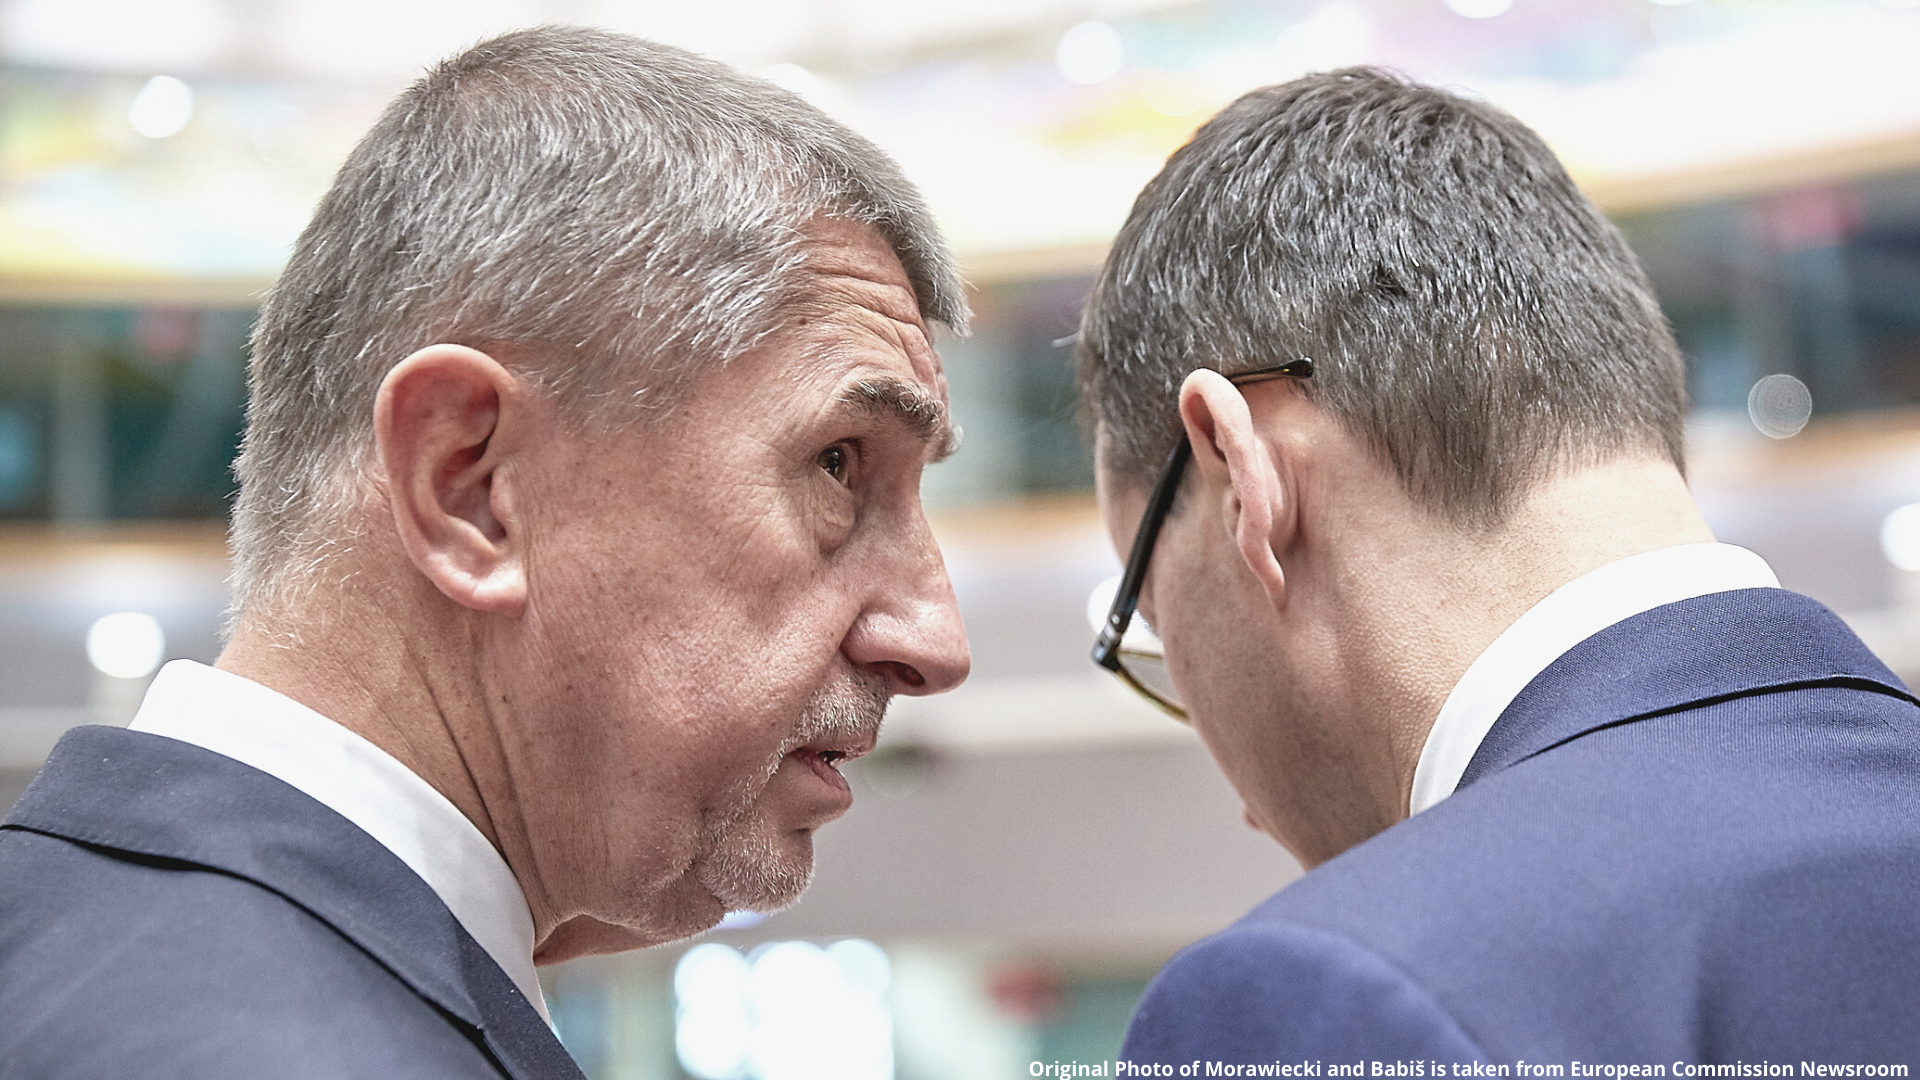 Original Photo of Morawiecki and Babiš is taken from European Commission Newsroom